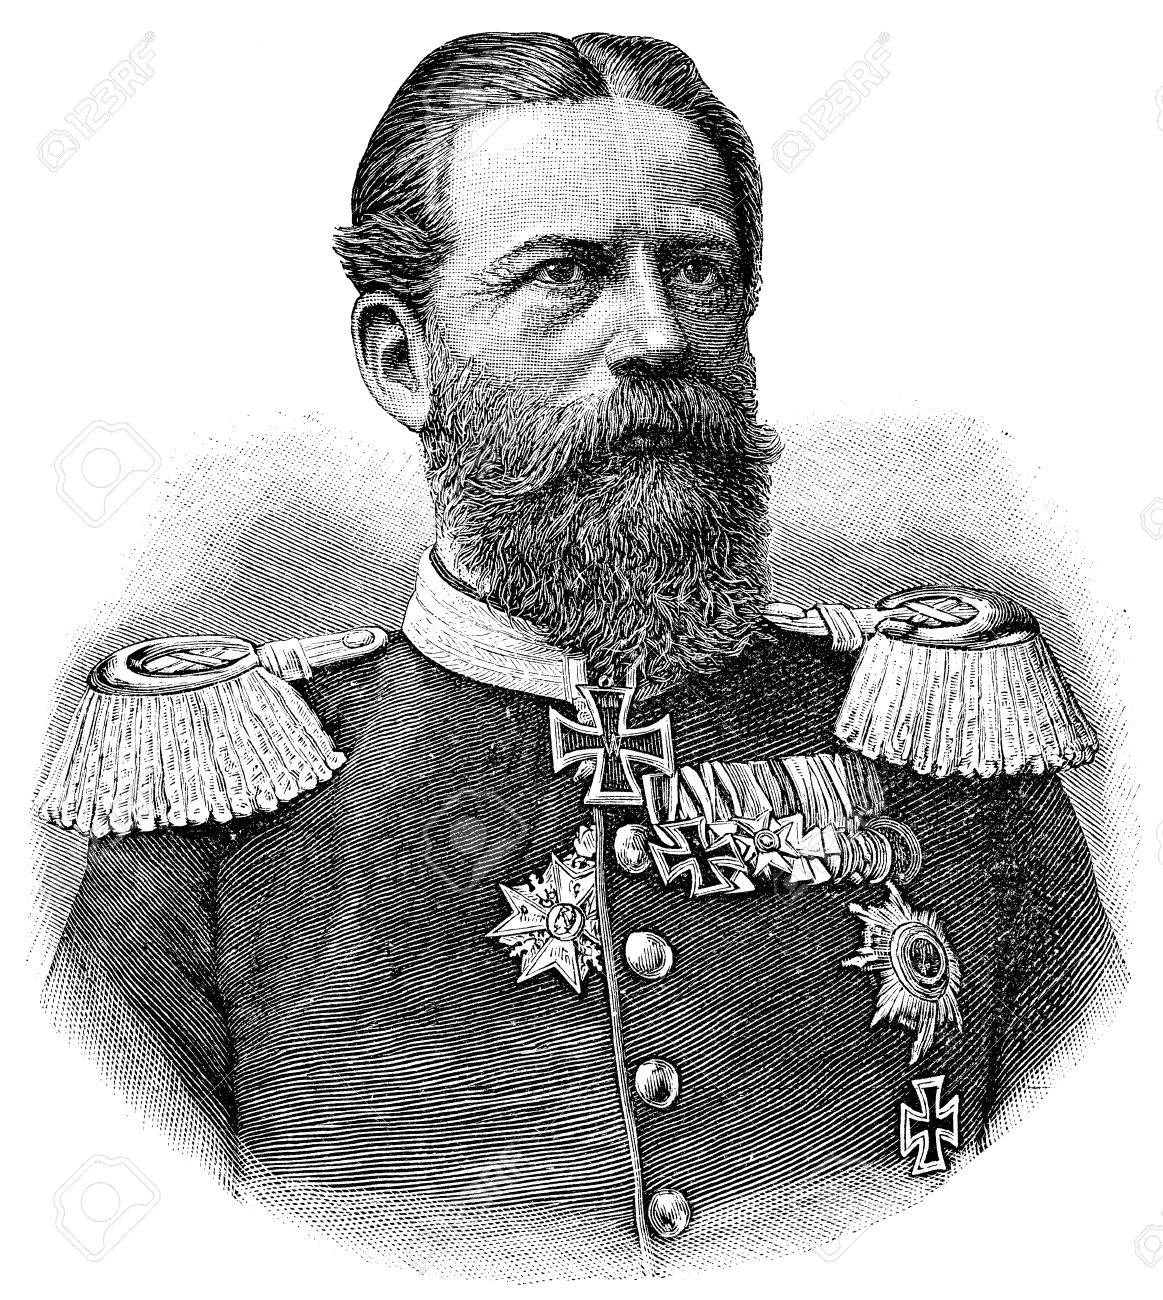 """Portrait of Frederick III, German Emperor. Publication of the book """"A Century in the text and pictures"""", Berlin, Germany, 1899 - 32910441"""